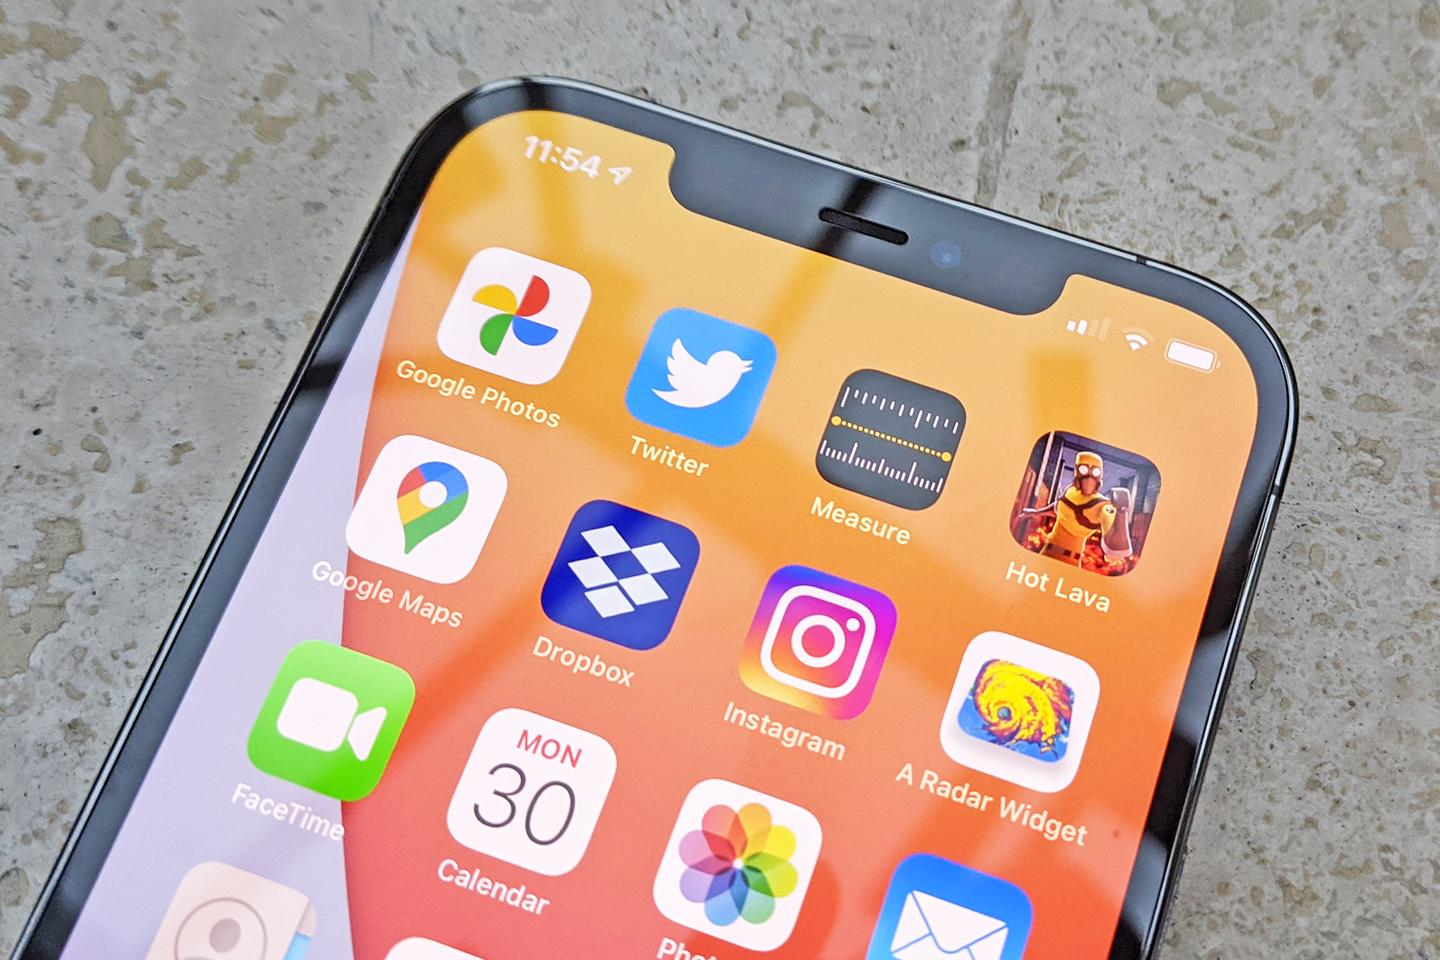 The notch and Face ID have been present since the iPhone X